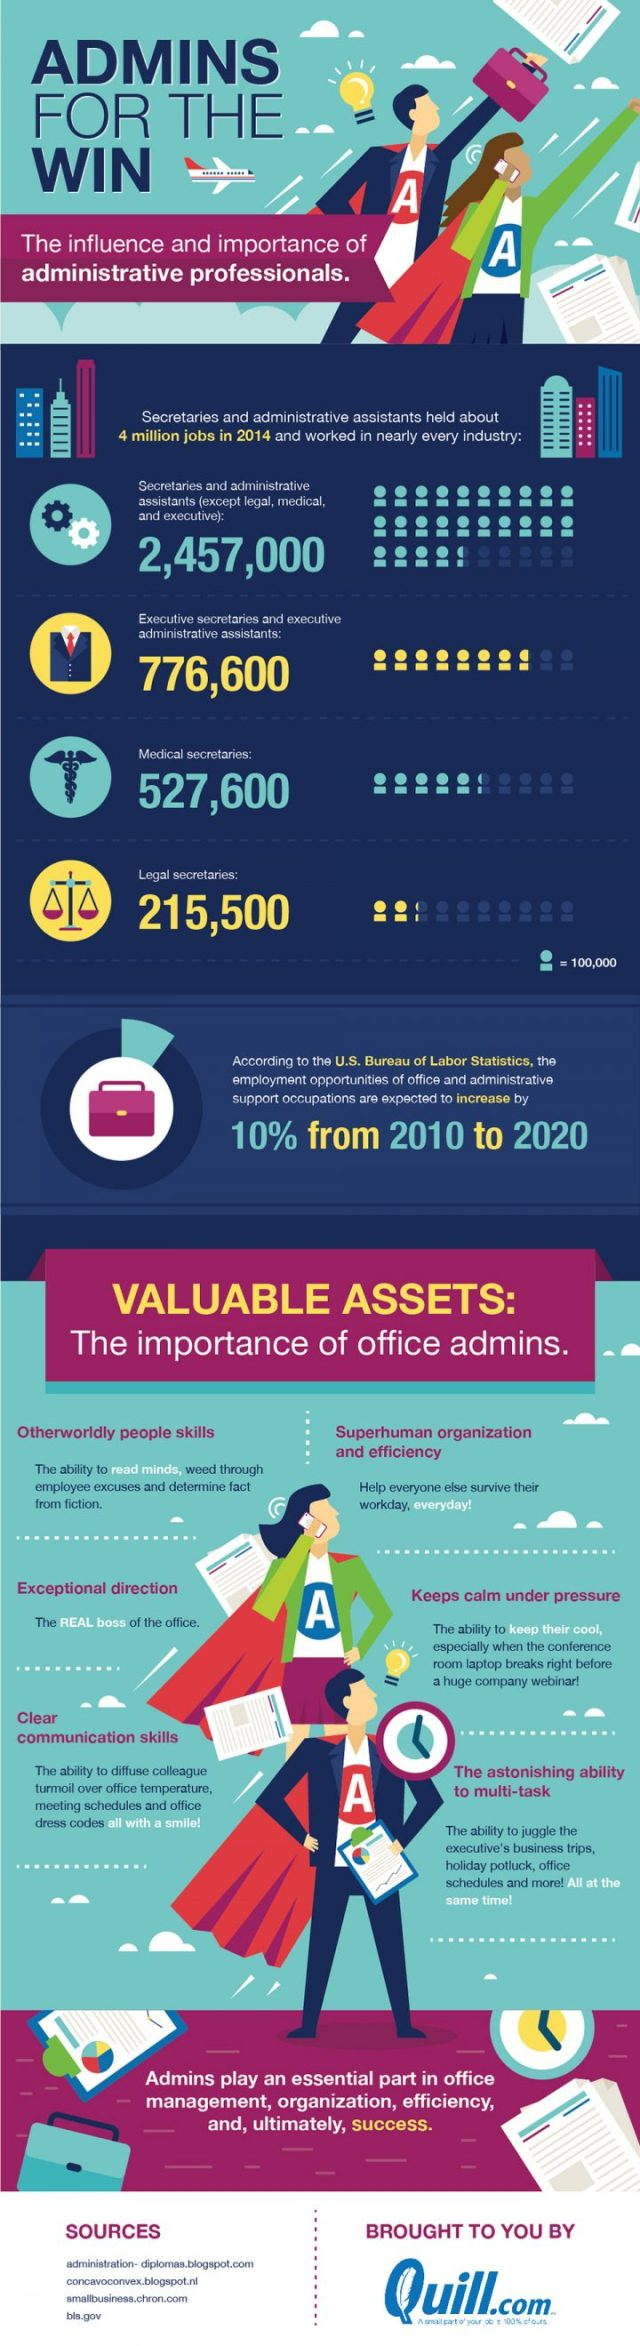 the-influence-and-importance-of-administrative-professionals_5720d5abad6ce